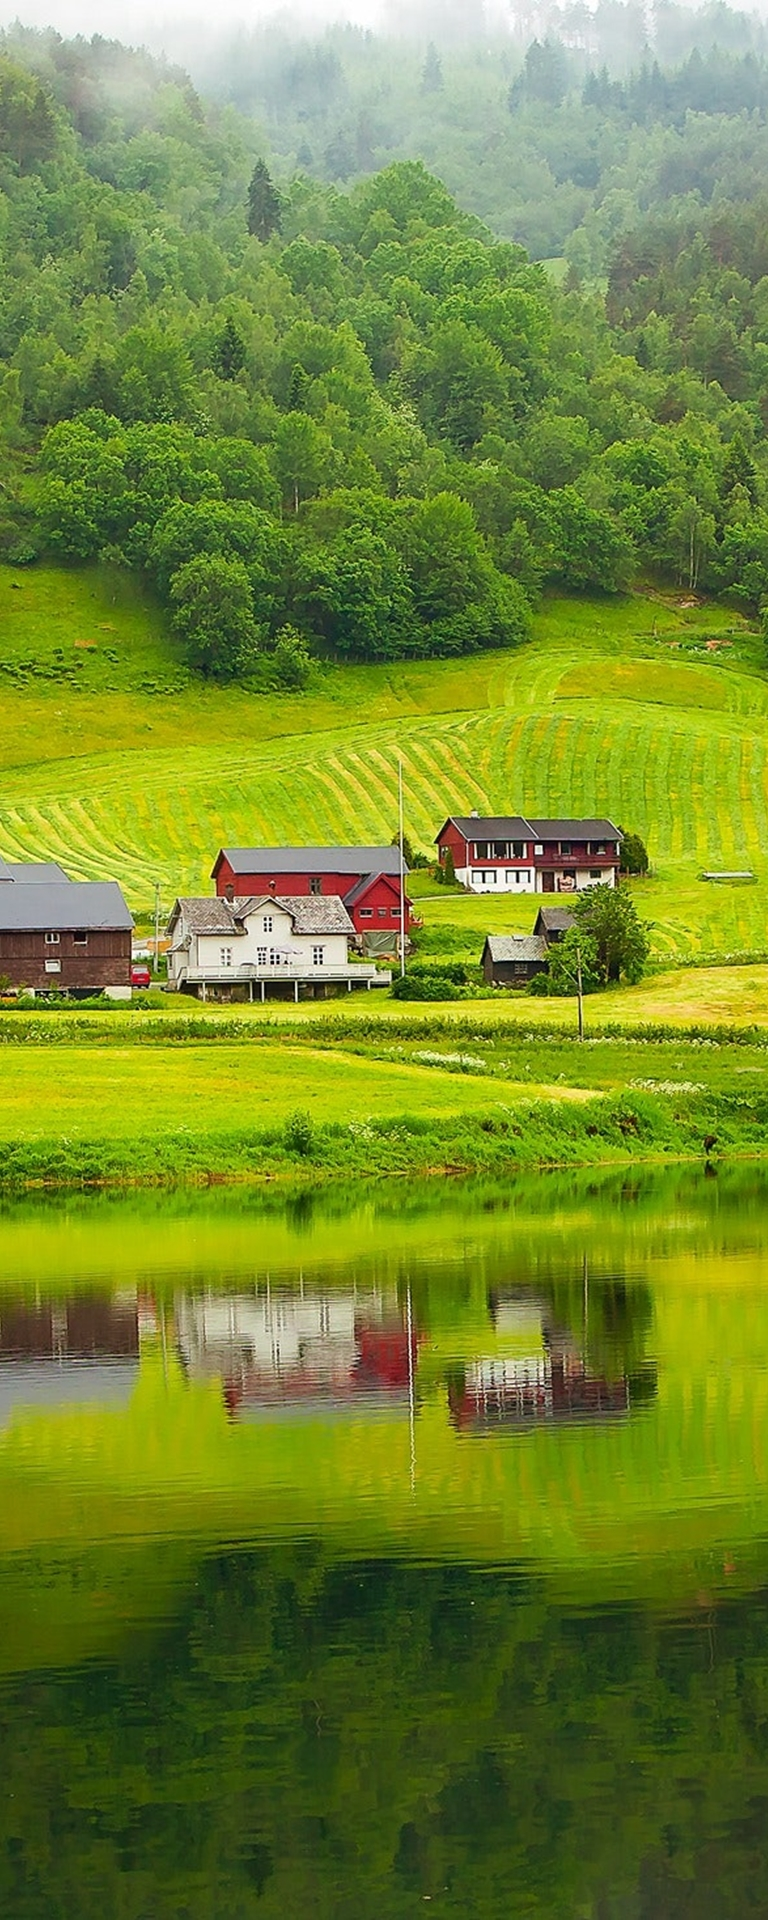 agriculture-barn-beautiful-2596372